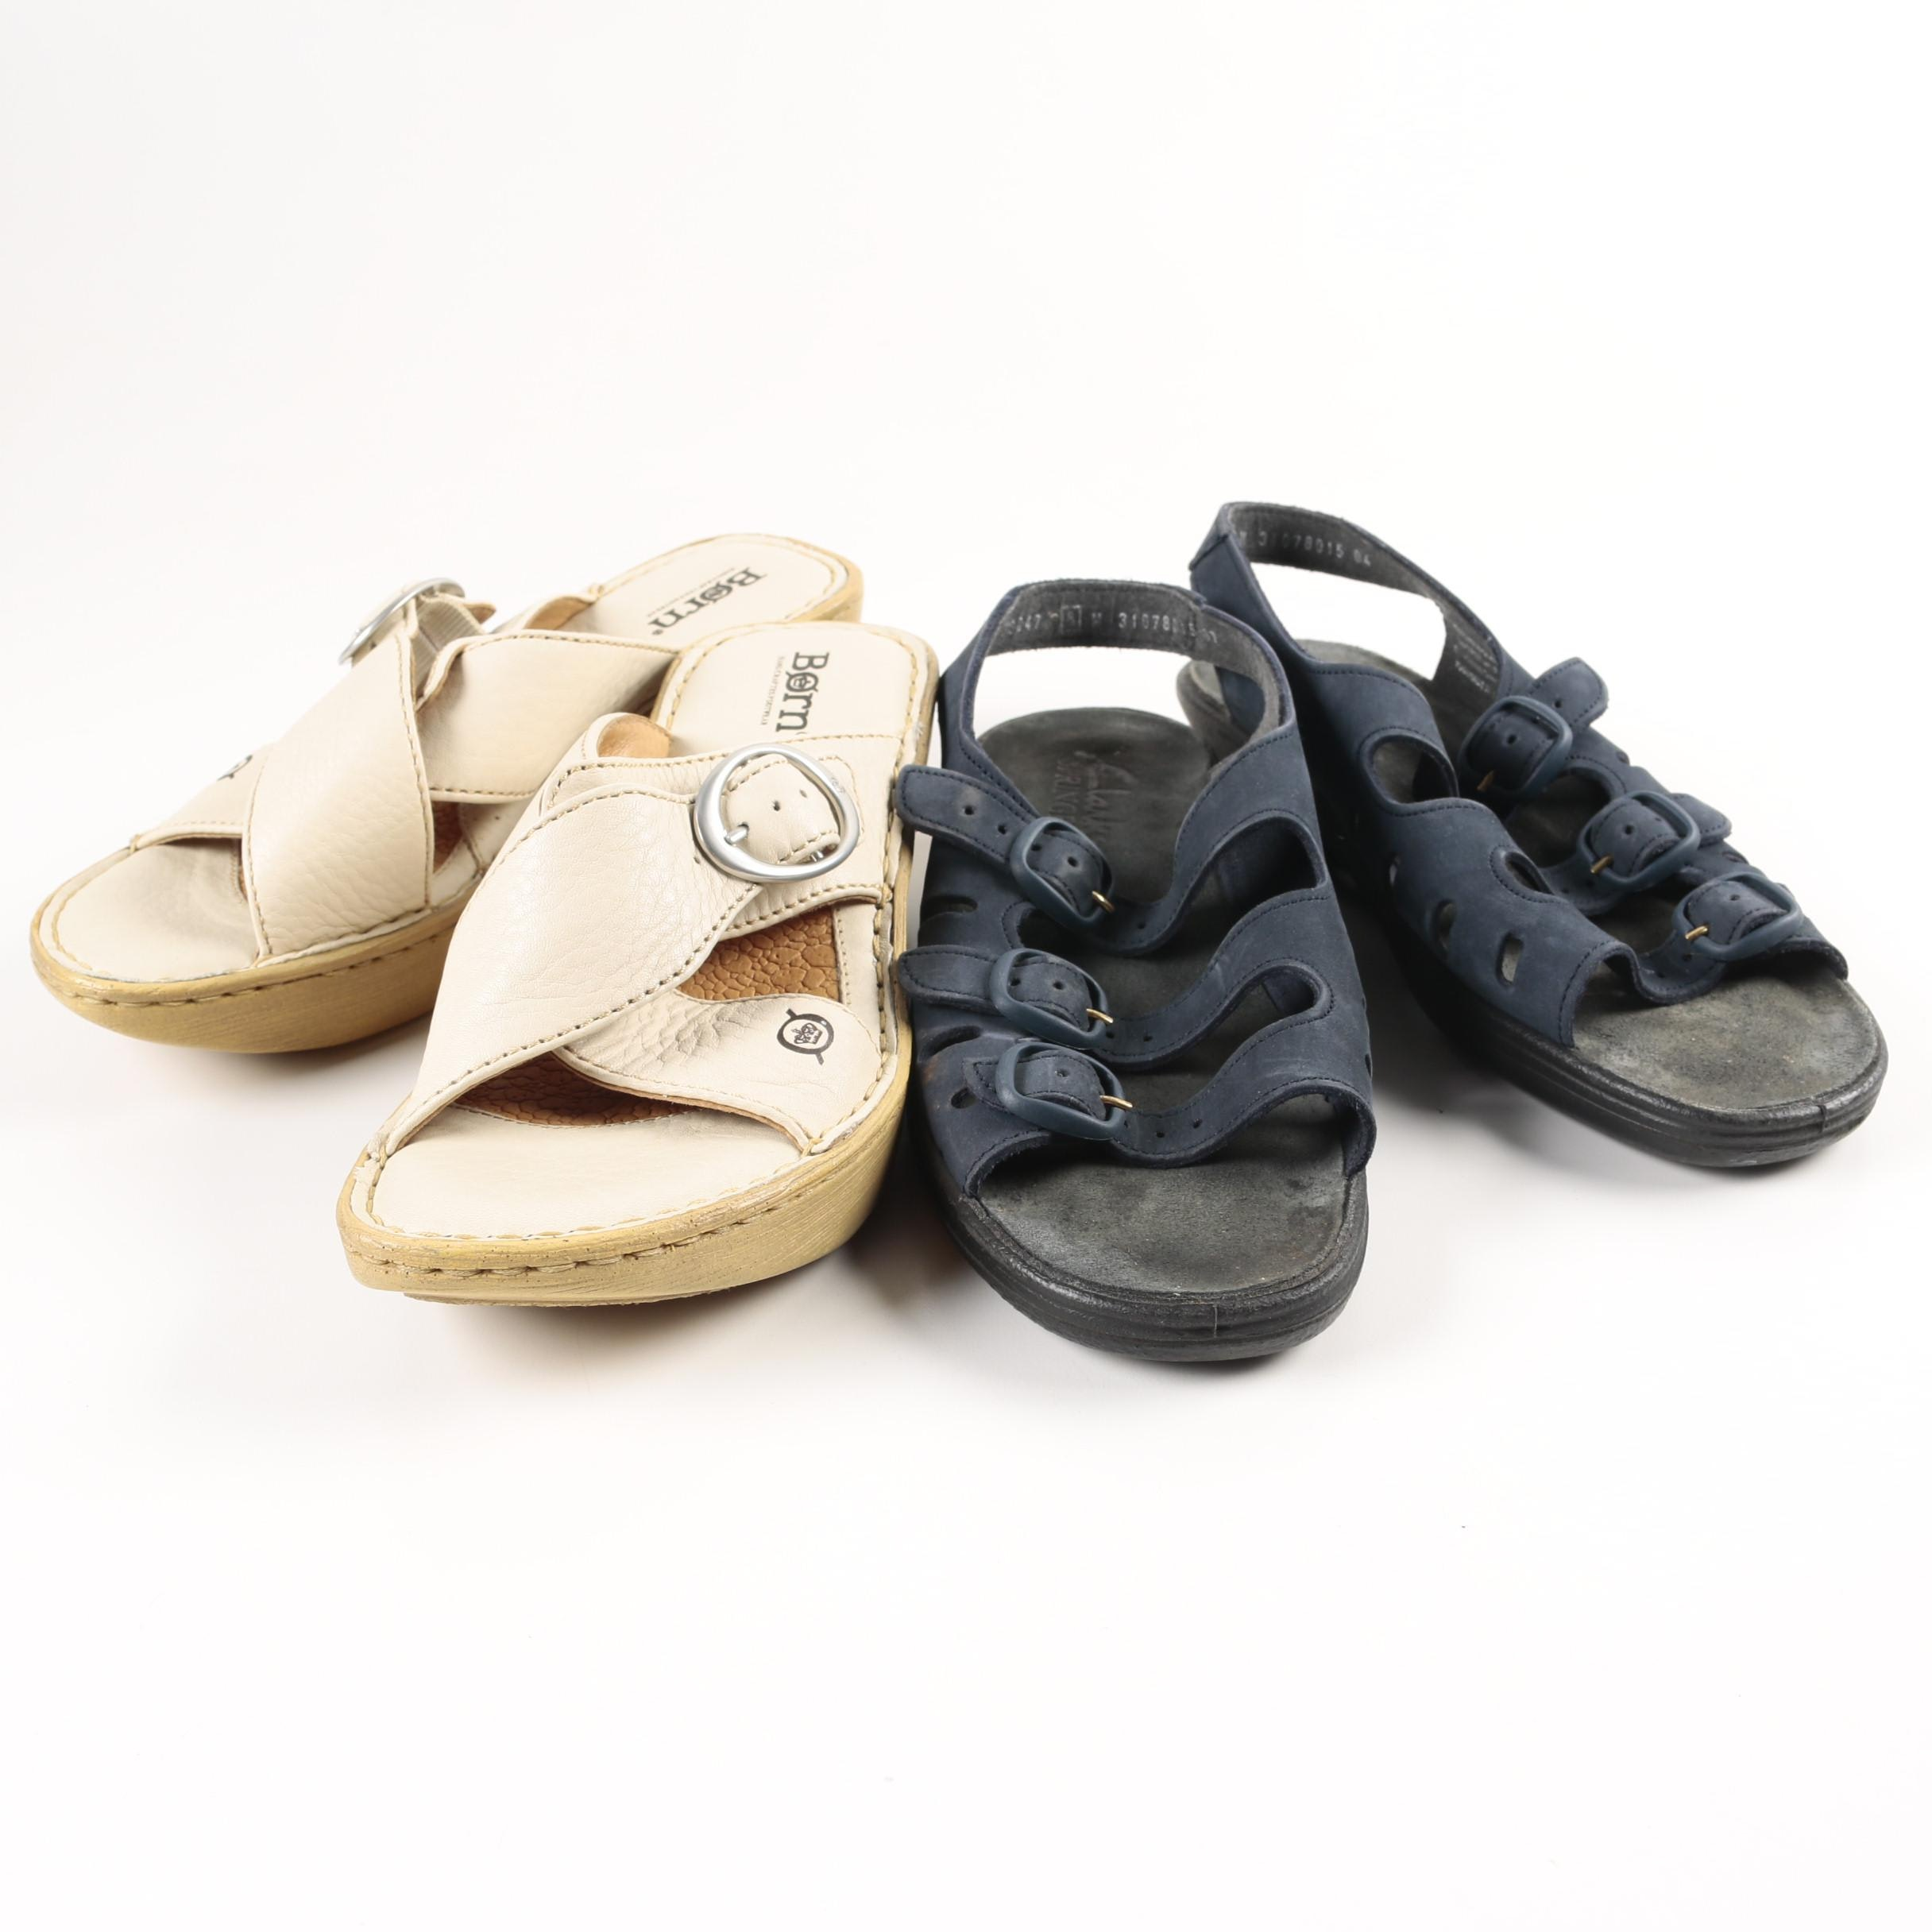 Woman's Sandals Including Born